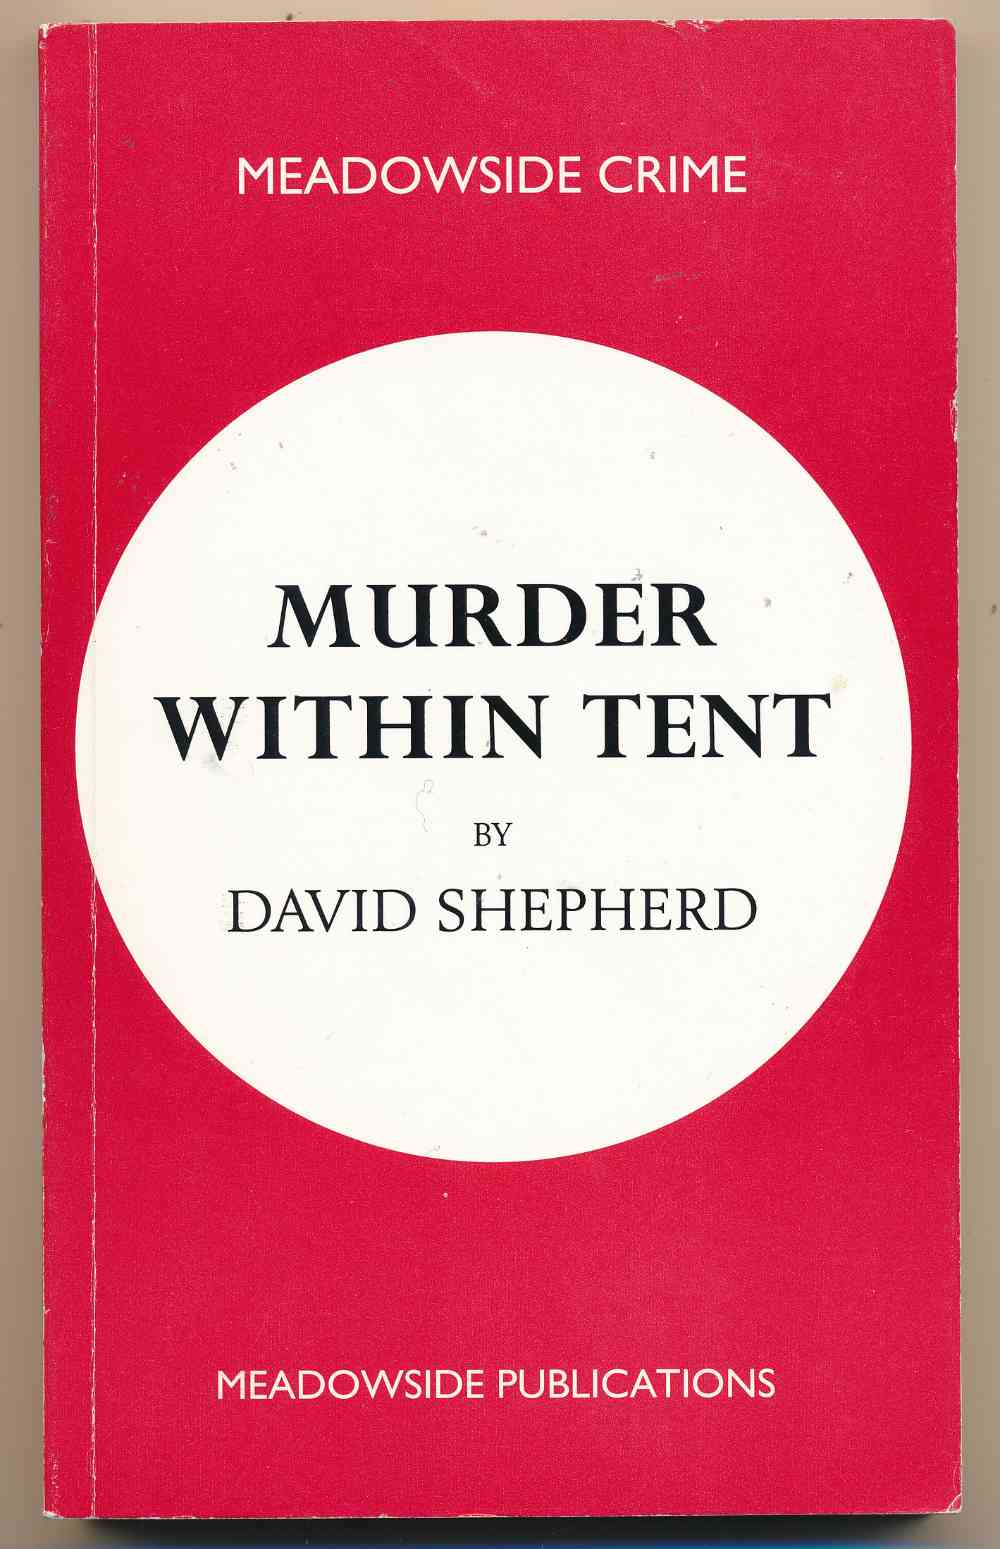 Murder within tent